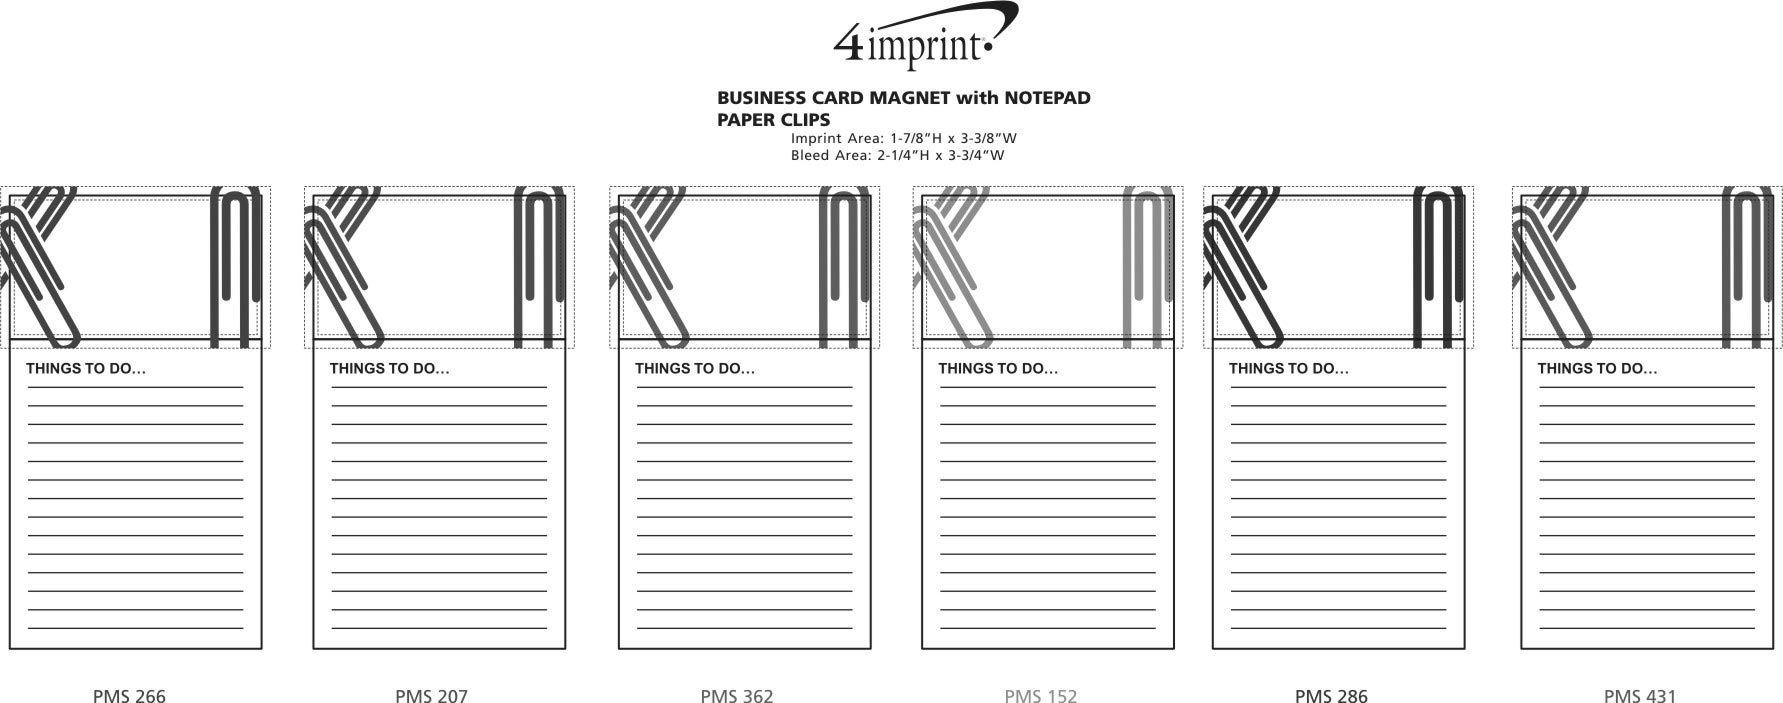 4imprint.com: Bic Business Card Magnet with Notepad - Paper Clips ...